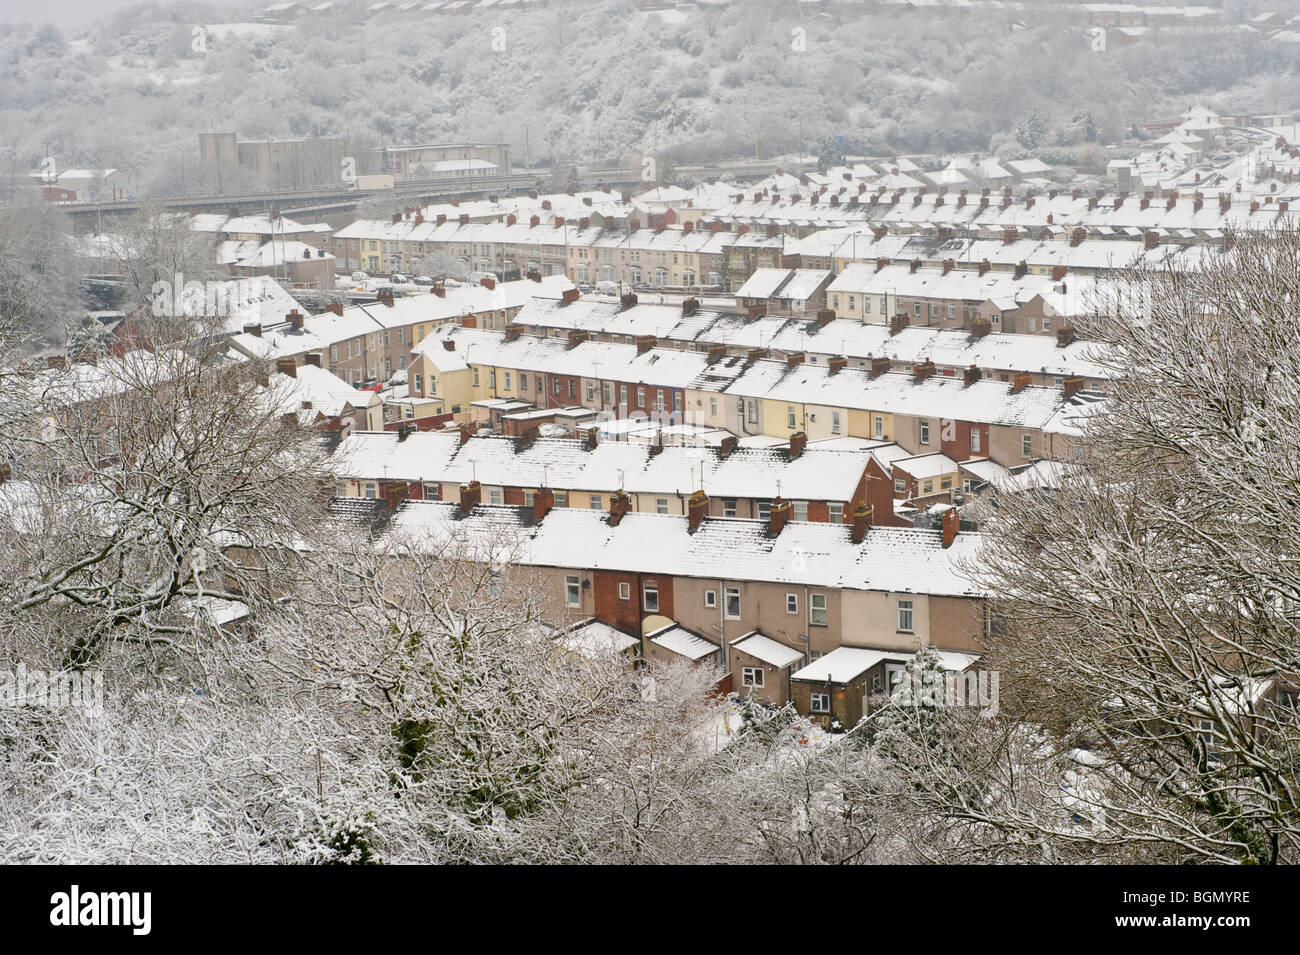 View over rooftops of terraced houses covered in snow at Newport South Wales UK - Stock Image